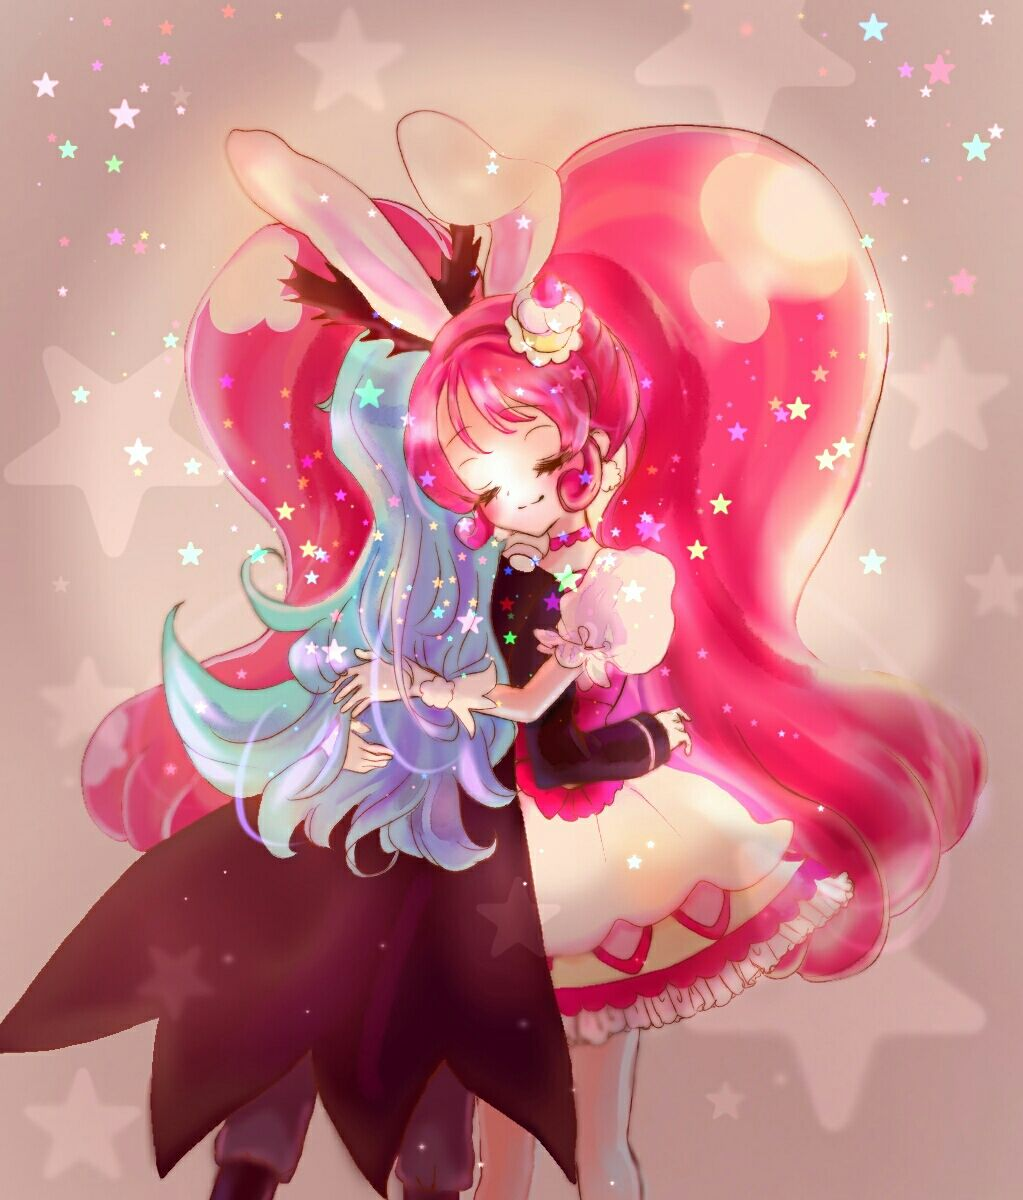 Pin by Becca RobertsonRyans on Becca39s Precure Couples ...